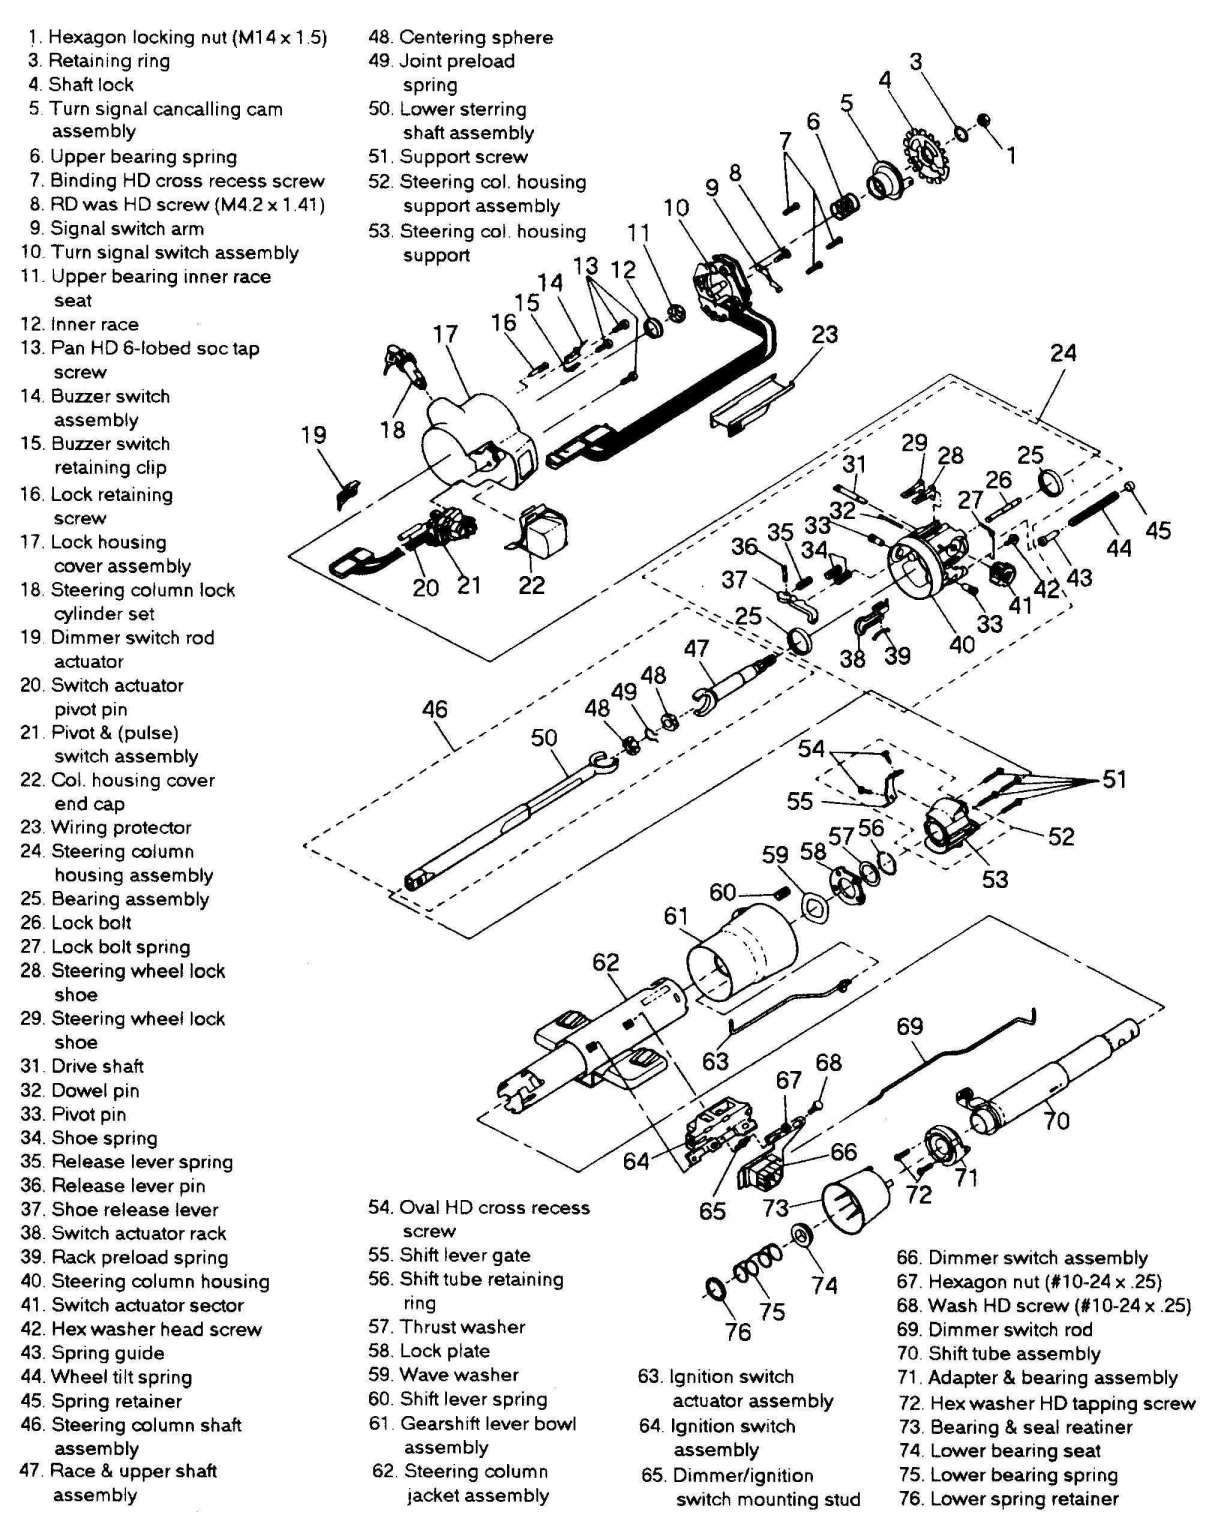 1989 chevy truck steering column diagram and steering column feels like a  loose tooth - third | chevy trucks, loose tooth, steering column  pinterest